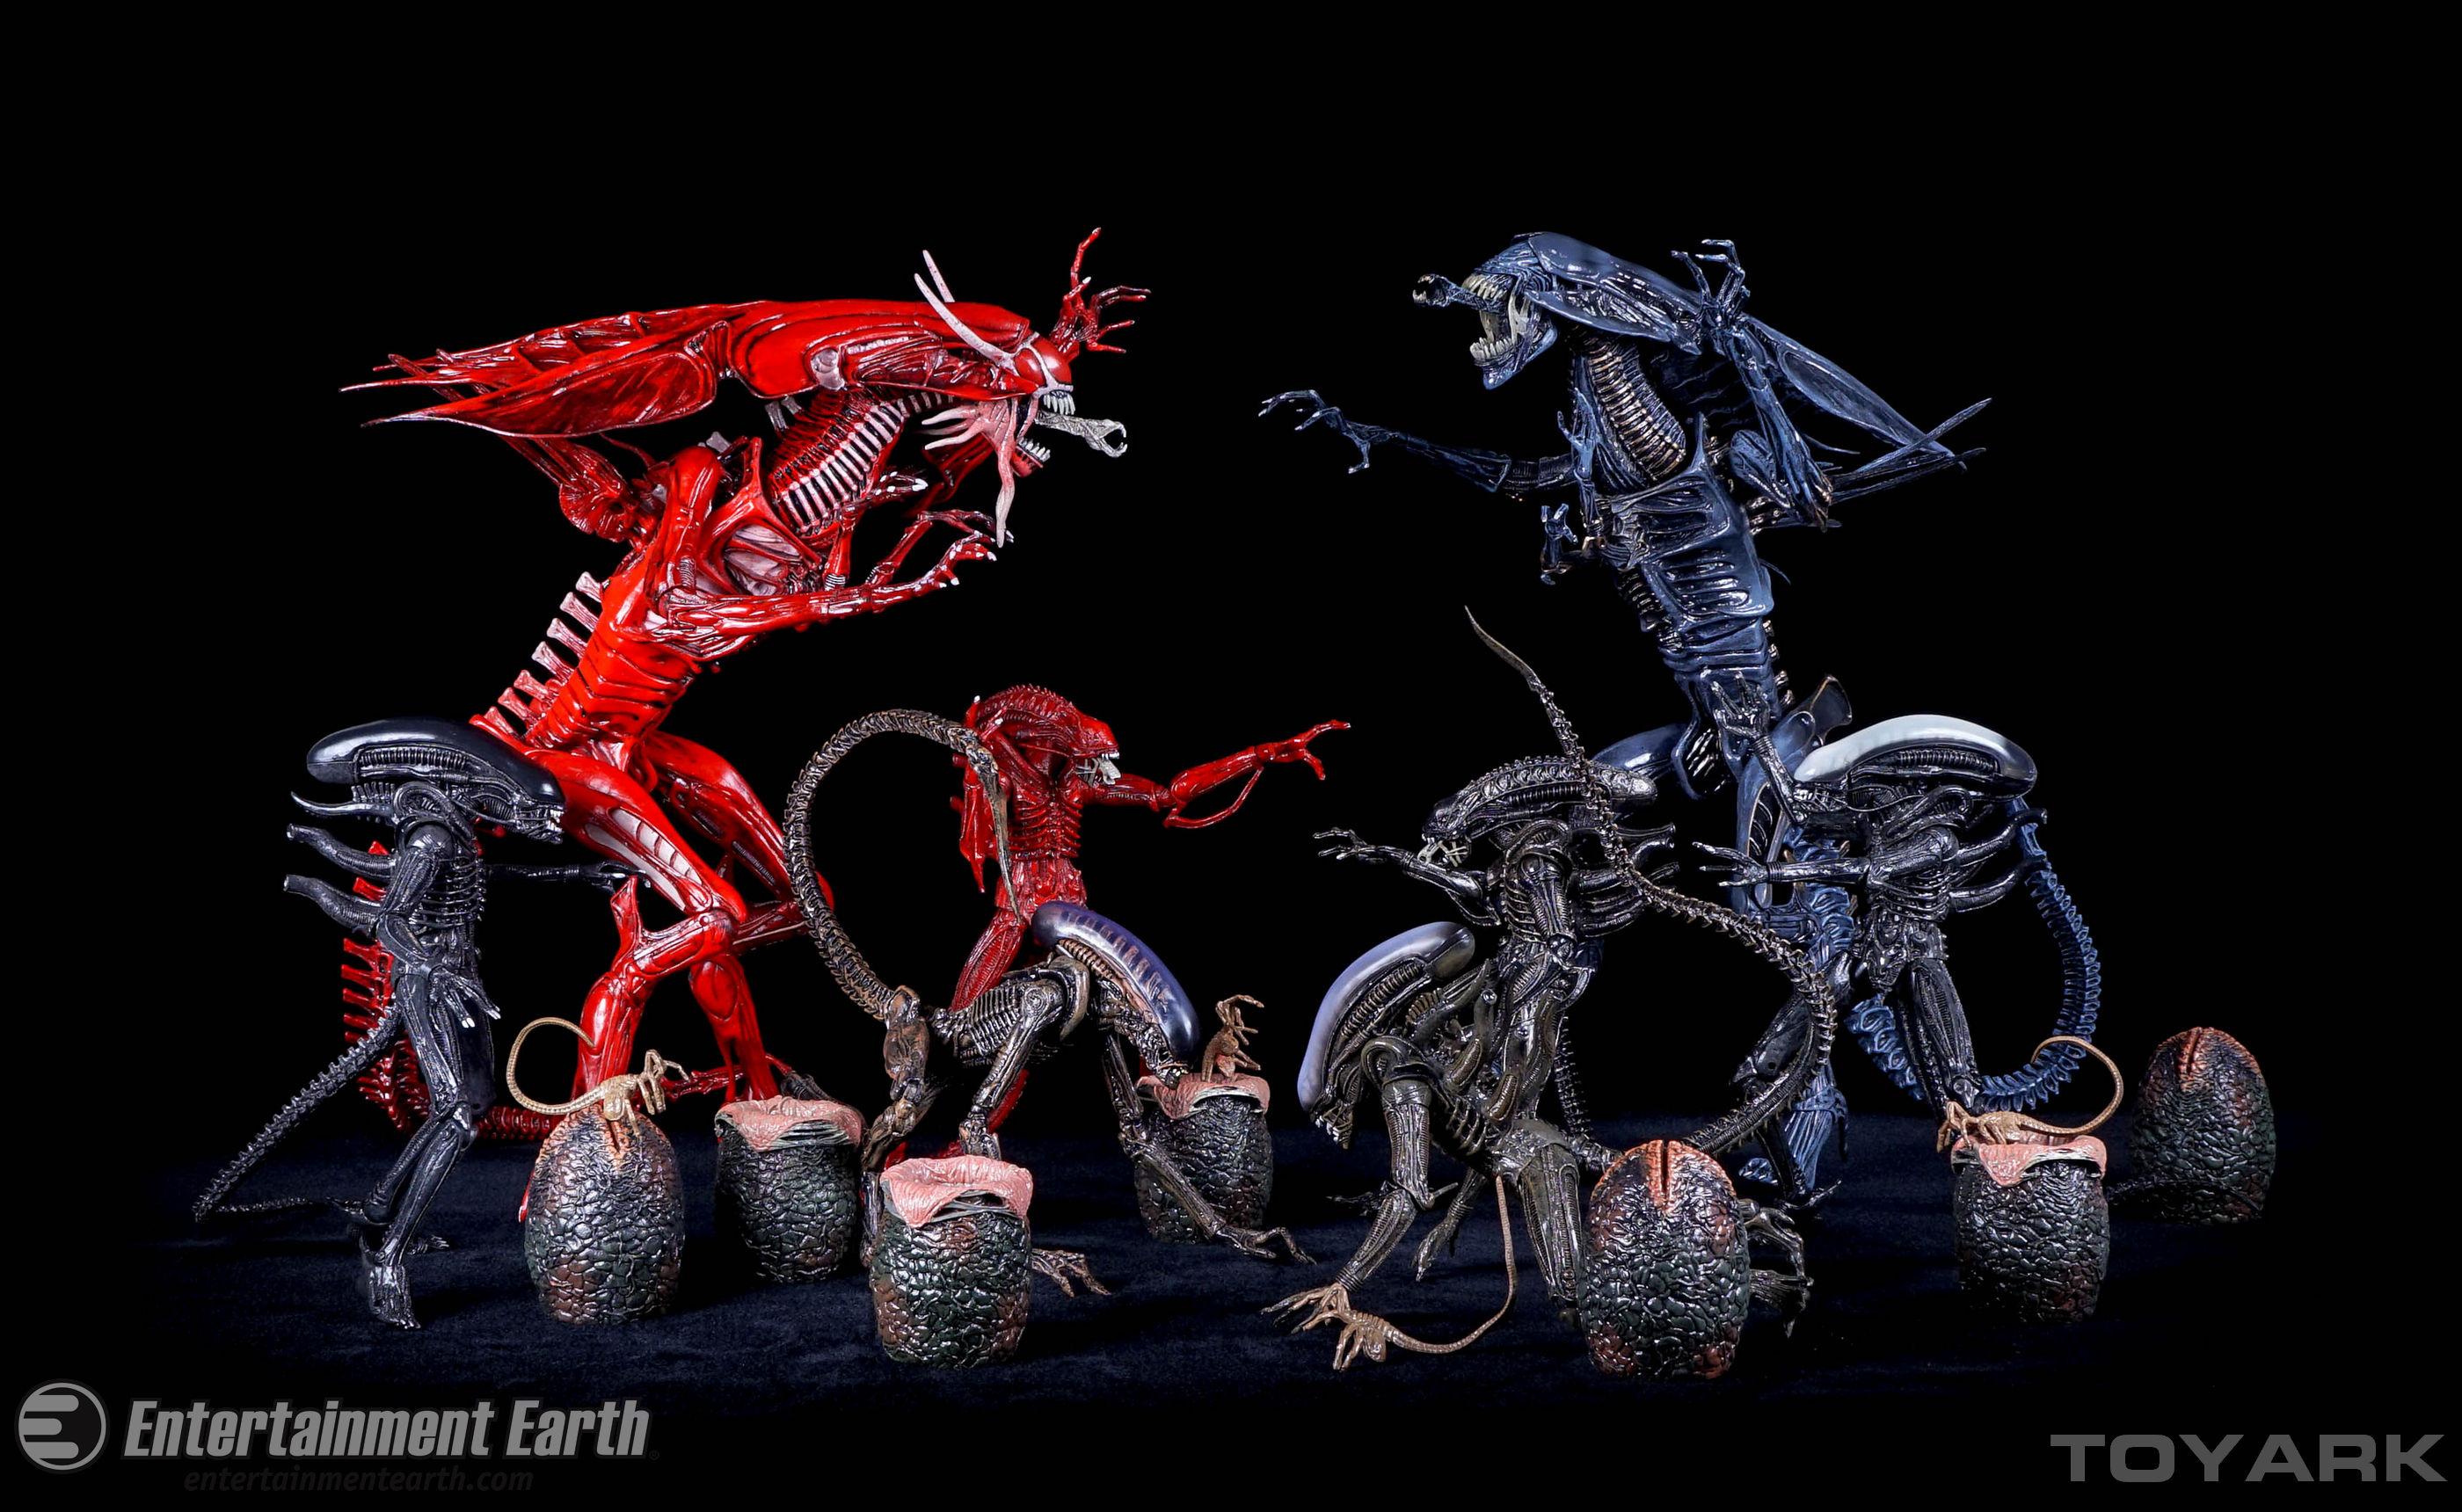 http://news.toyark.com/wp-content/uploads/sites/4/2015/12/NECA-Alien-Red-Queen-042.jpg